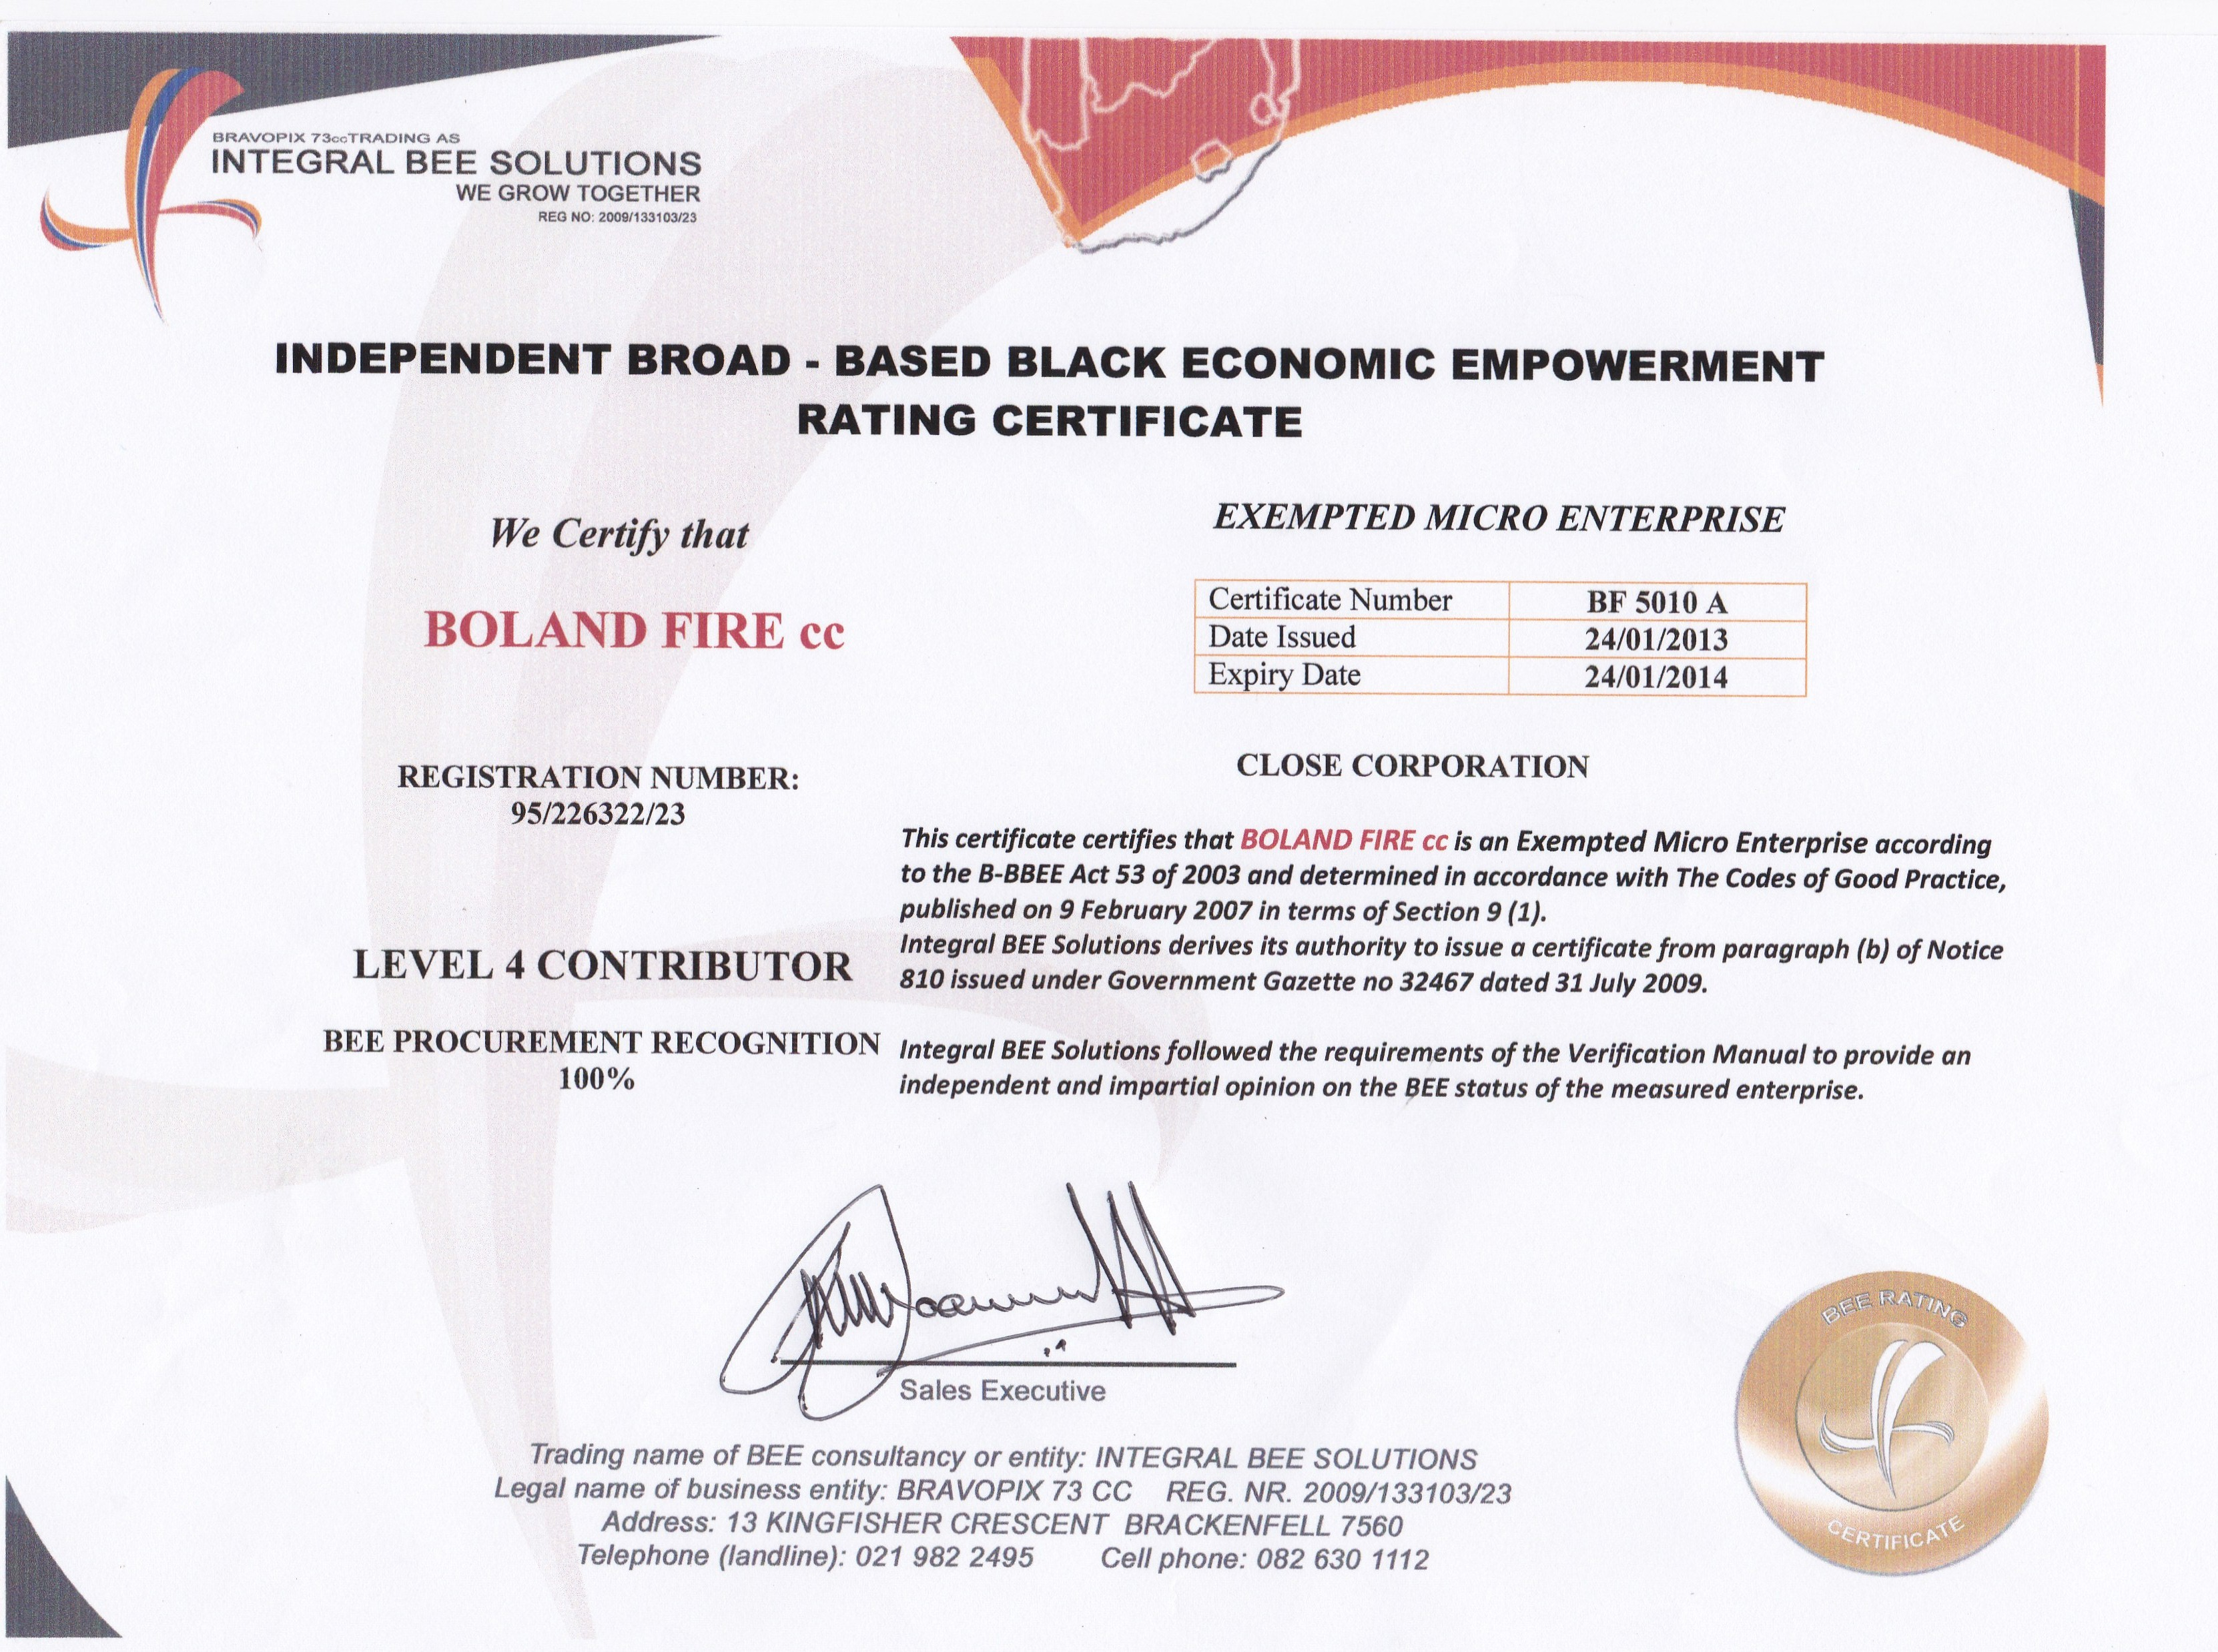 Boland Fire Services - 100% BEE Procurement Recognition